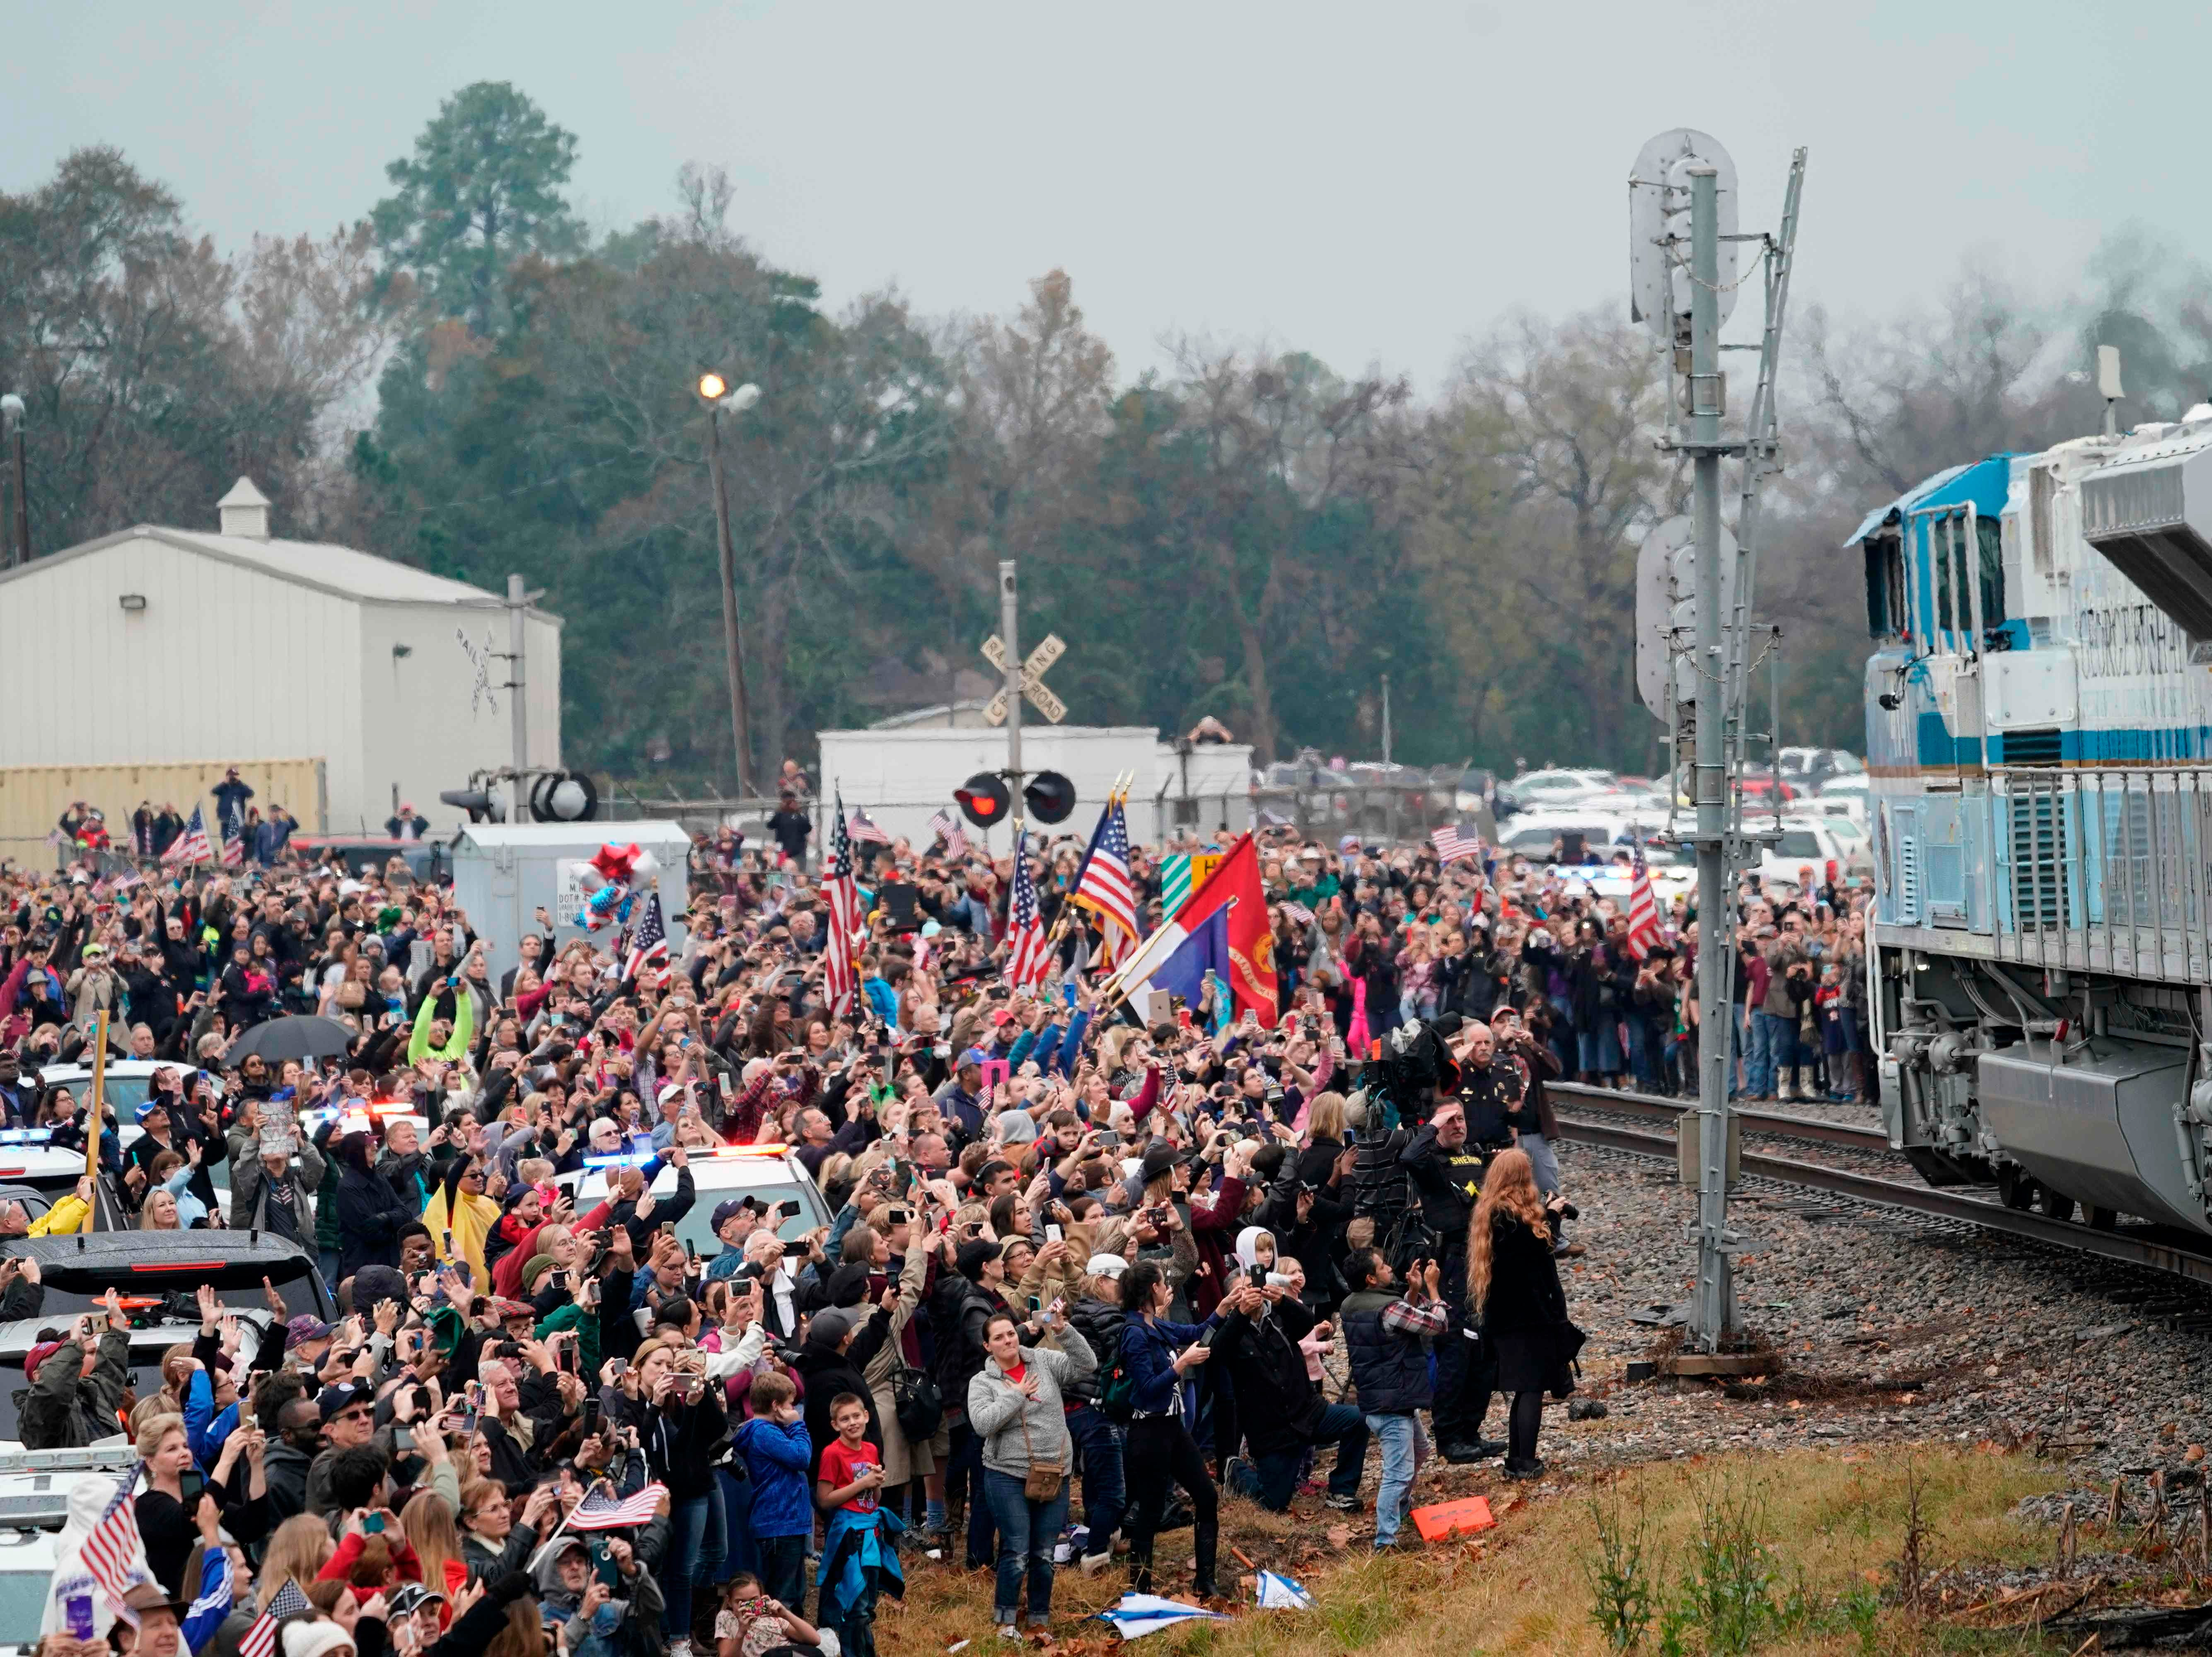 People pay their respects as the train carrying the casket of former US President George H.W. Bush passes on Dec. 6, 2018, along the route from Spring to College Station, Texas.